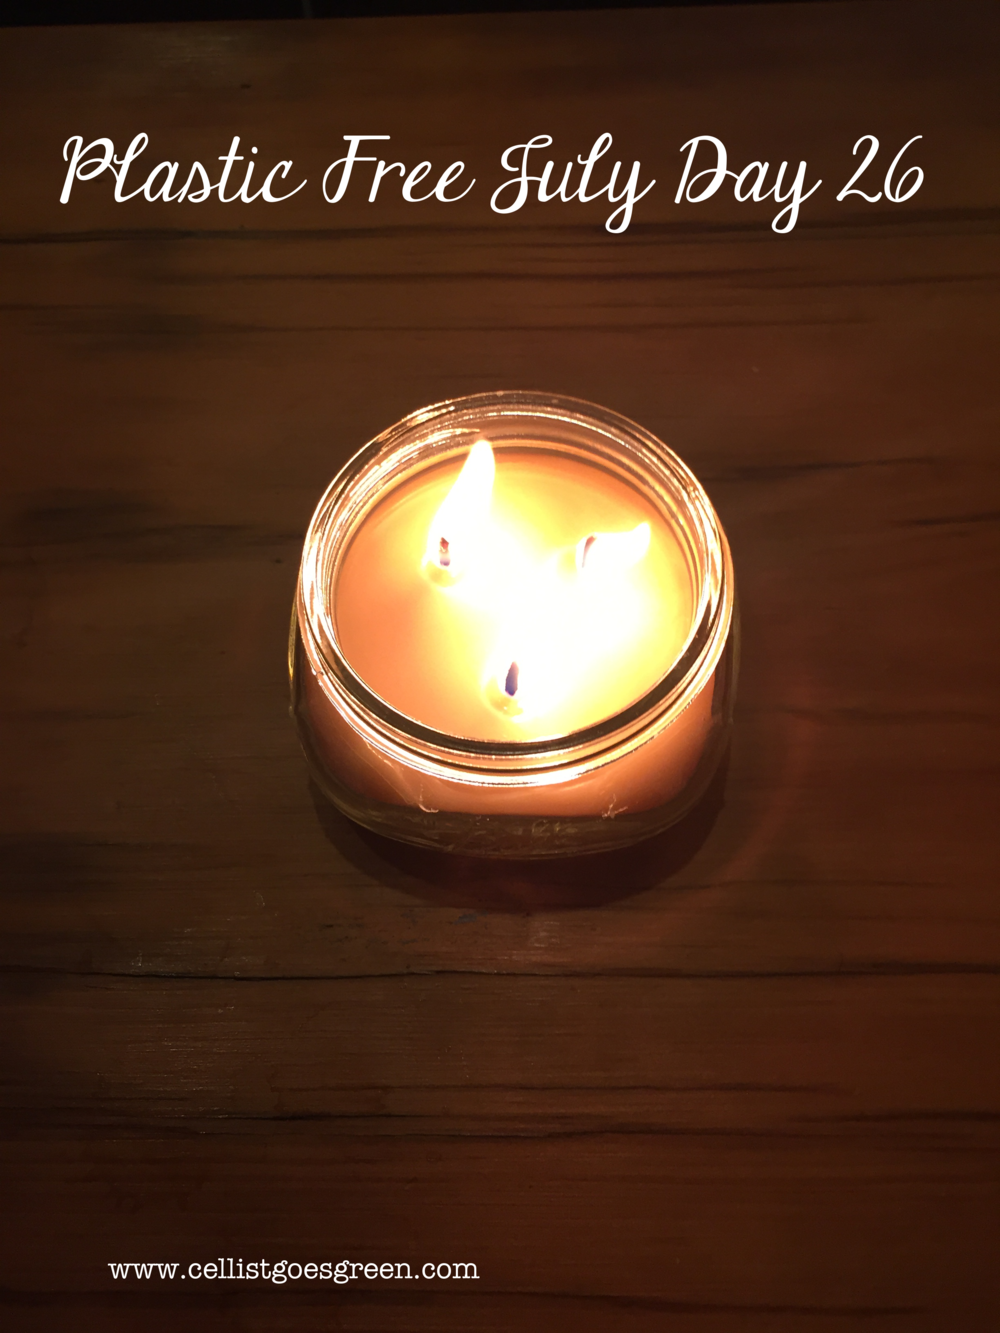 Plastic Free July Day 26: The benefits of beeswax candles | Cellist Goes Green